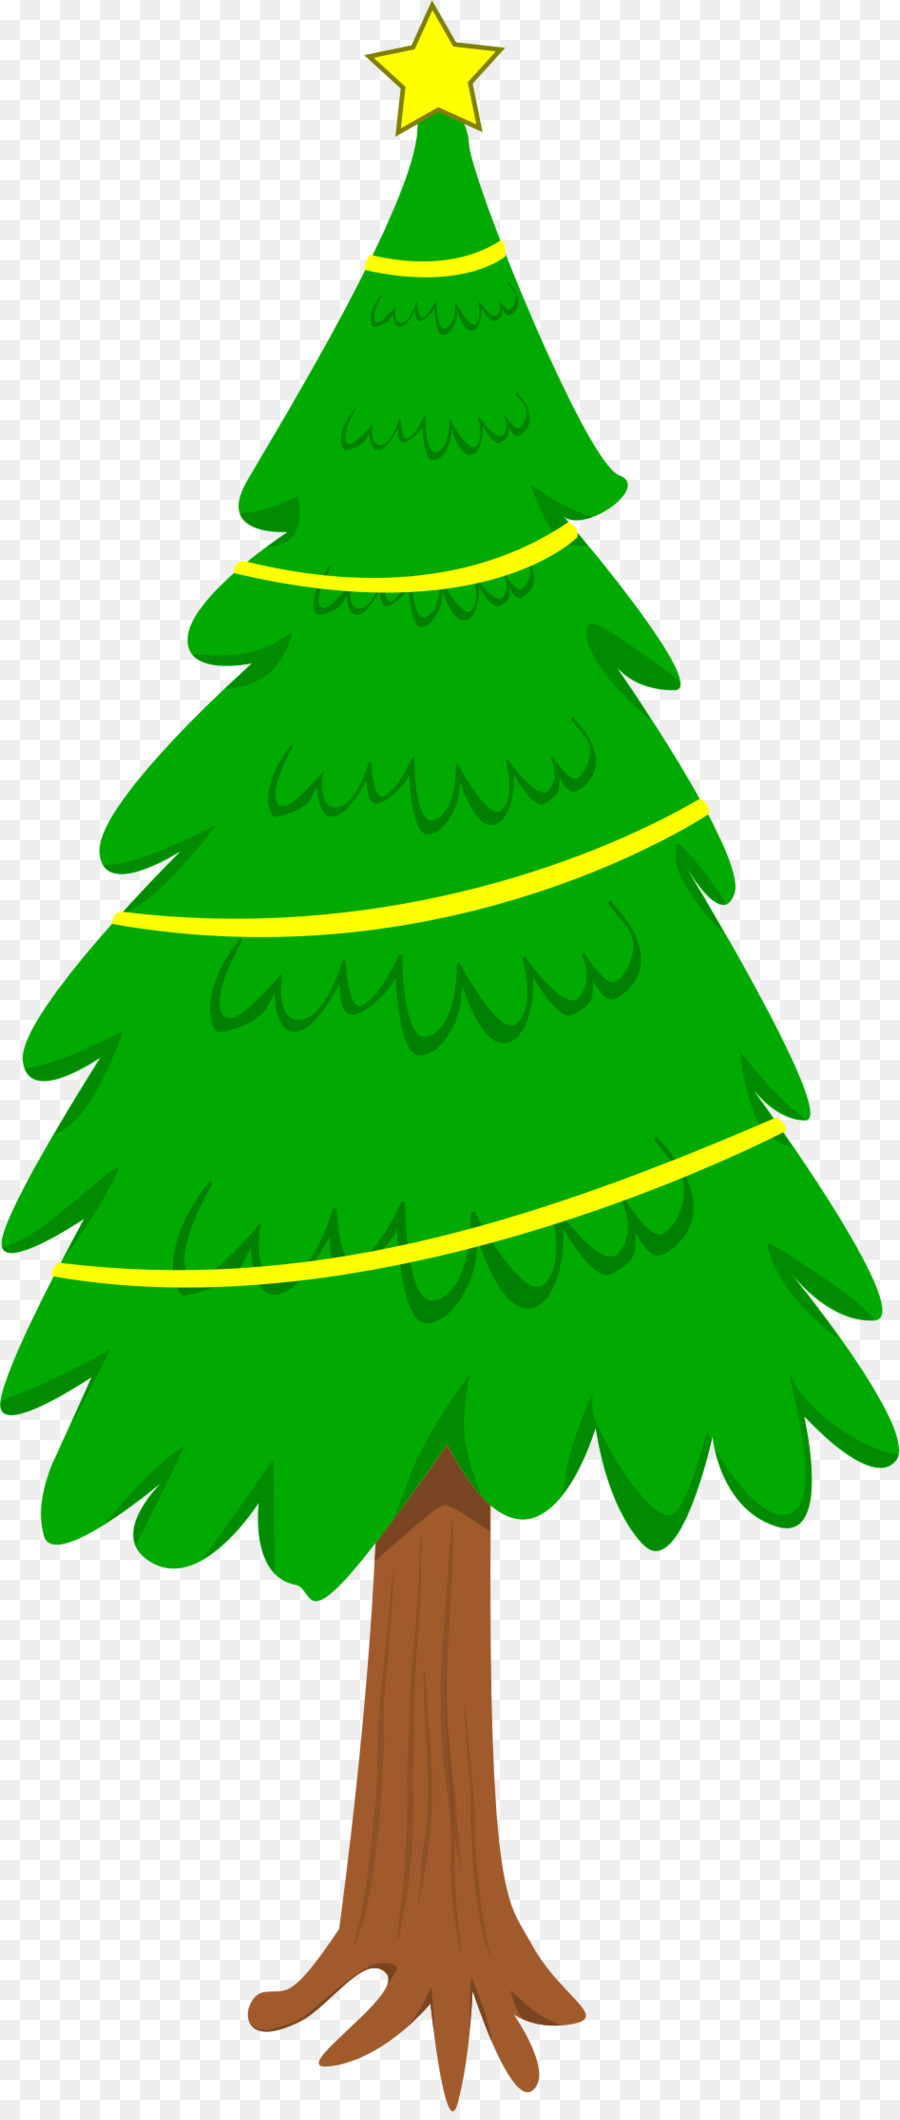 Tall christmas tree clipart black and white stock Christmas Tree Branchtransparent png image & clipart free ... black and white stock